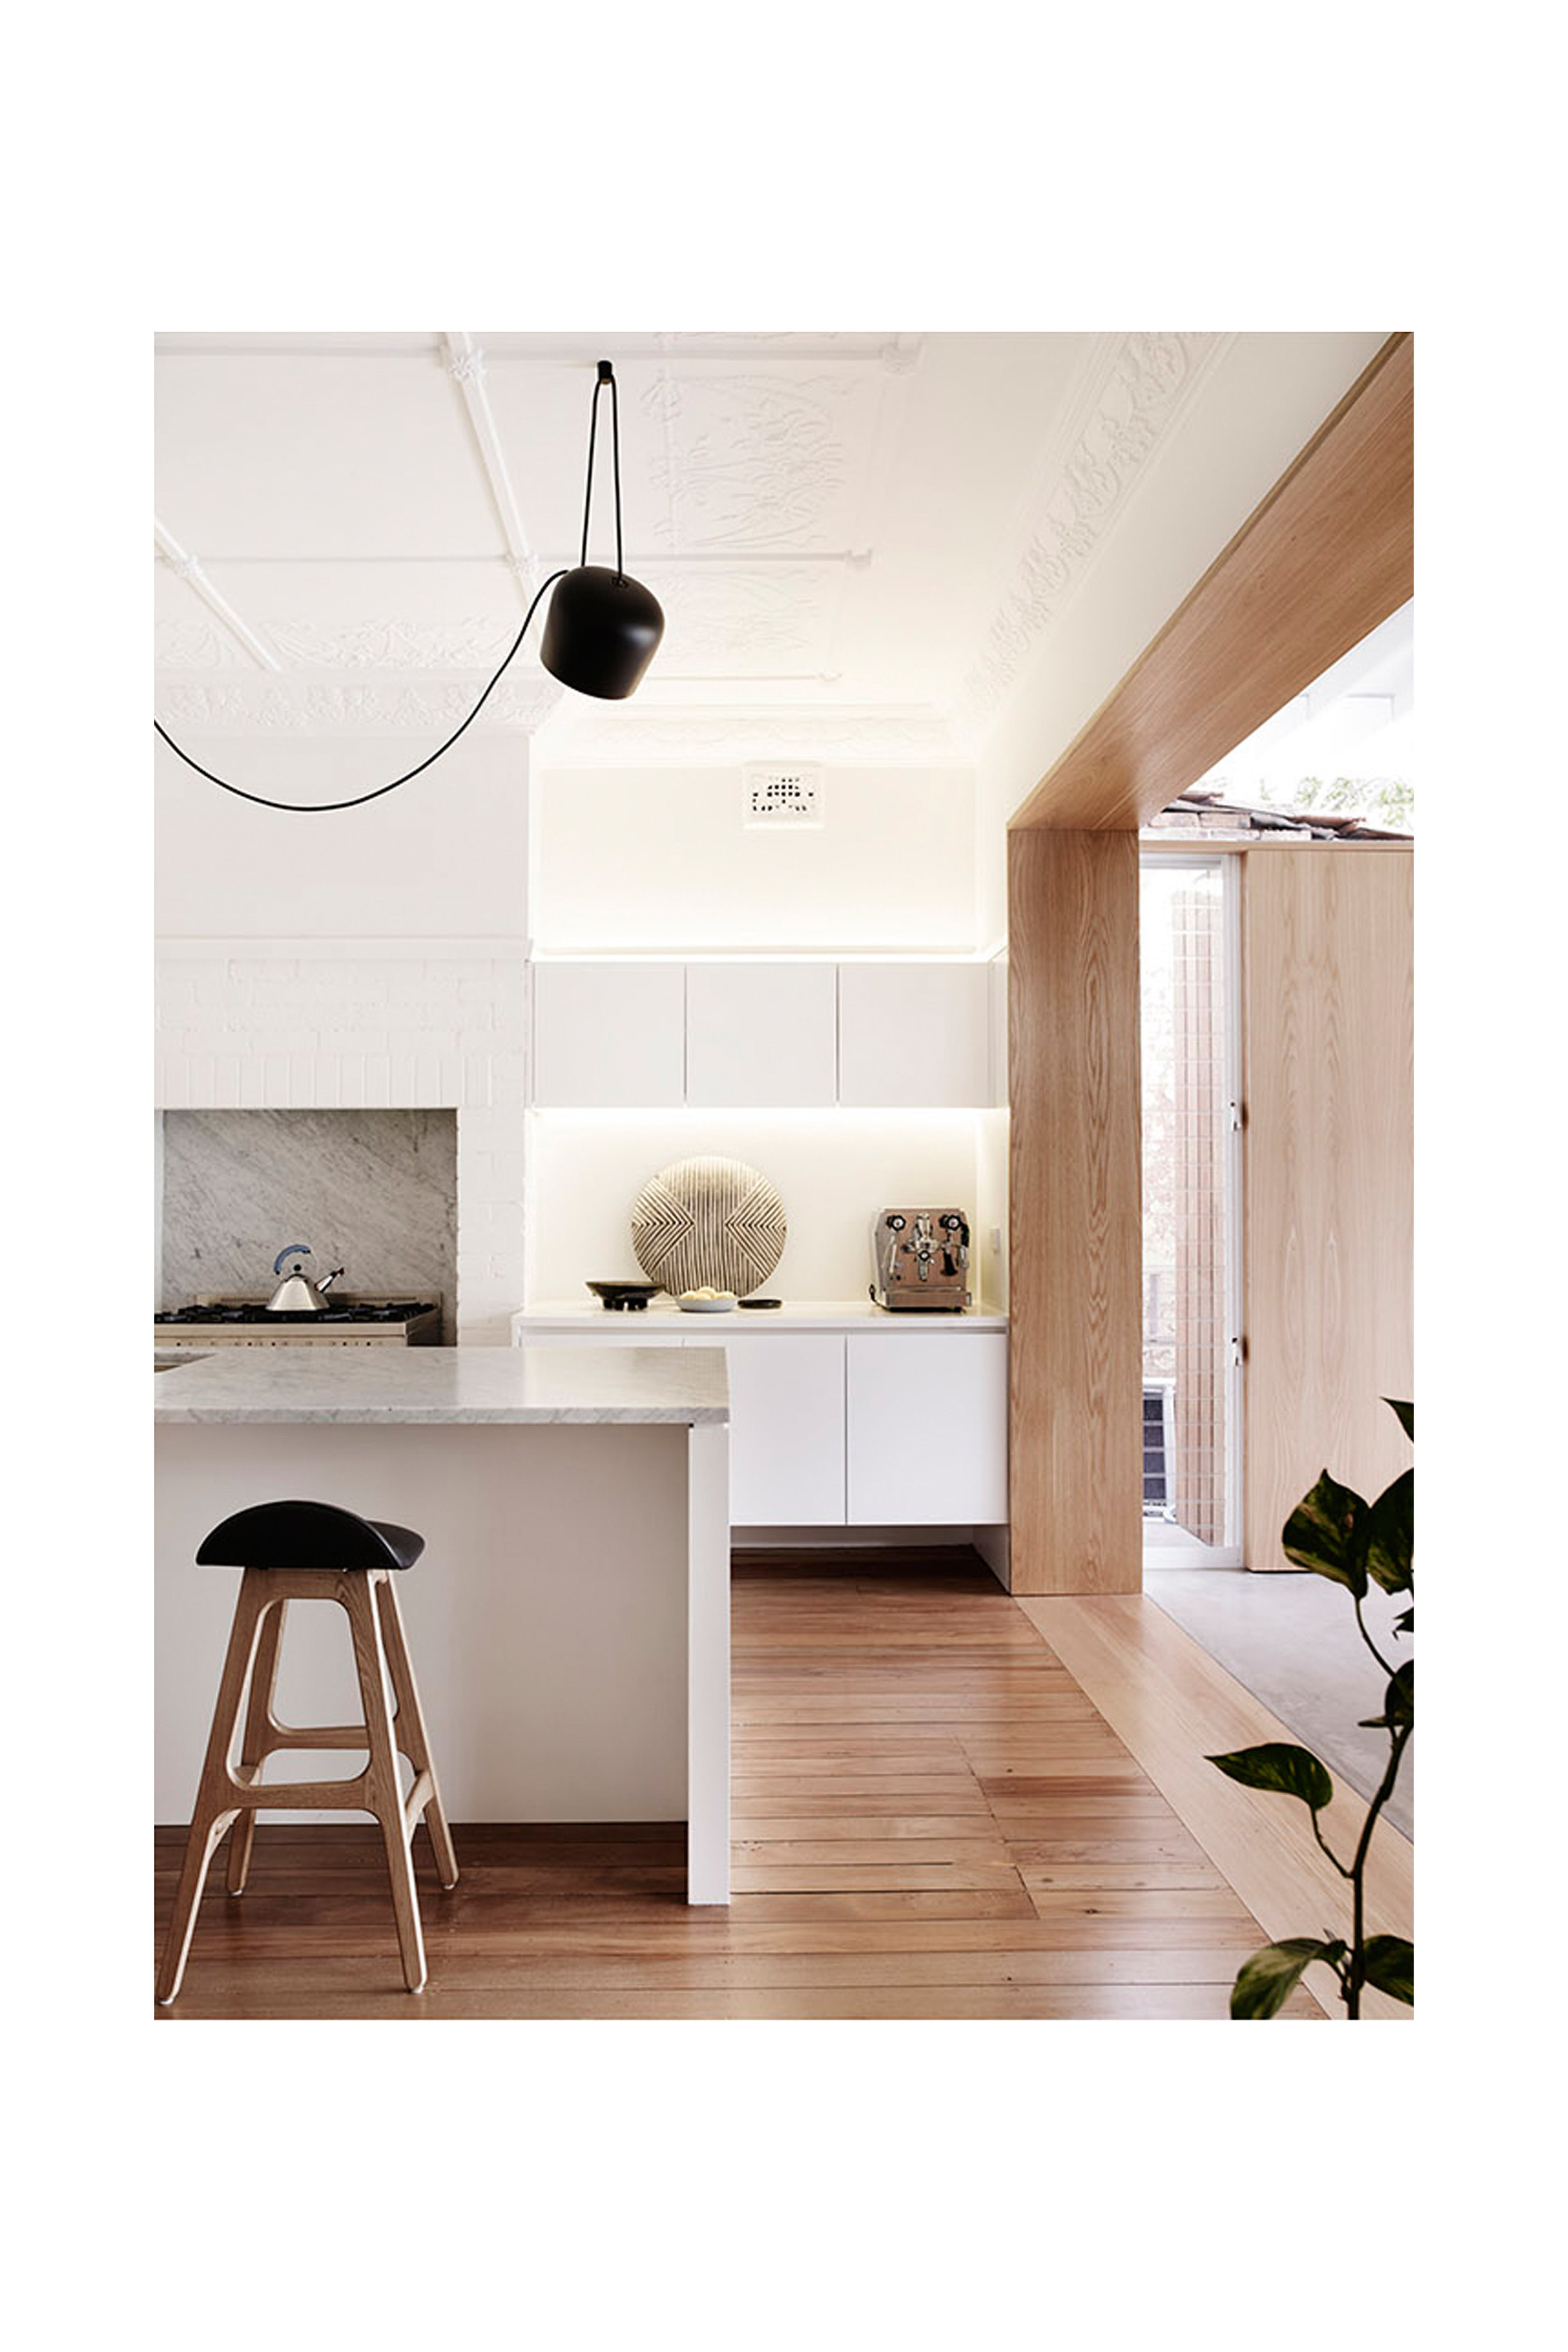 Website | File | Terence Yong Architecture | Coogee House : 2 in 1 | Alteration | Once a tired living area, the existing room has been repurposed and transformed into a new, tastefully designed Kitchen area.jpg